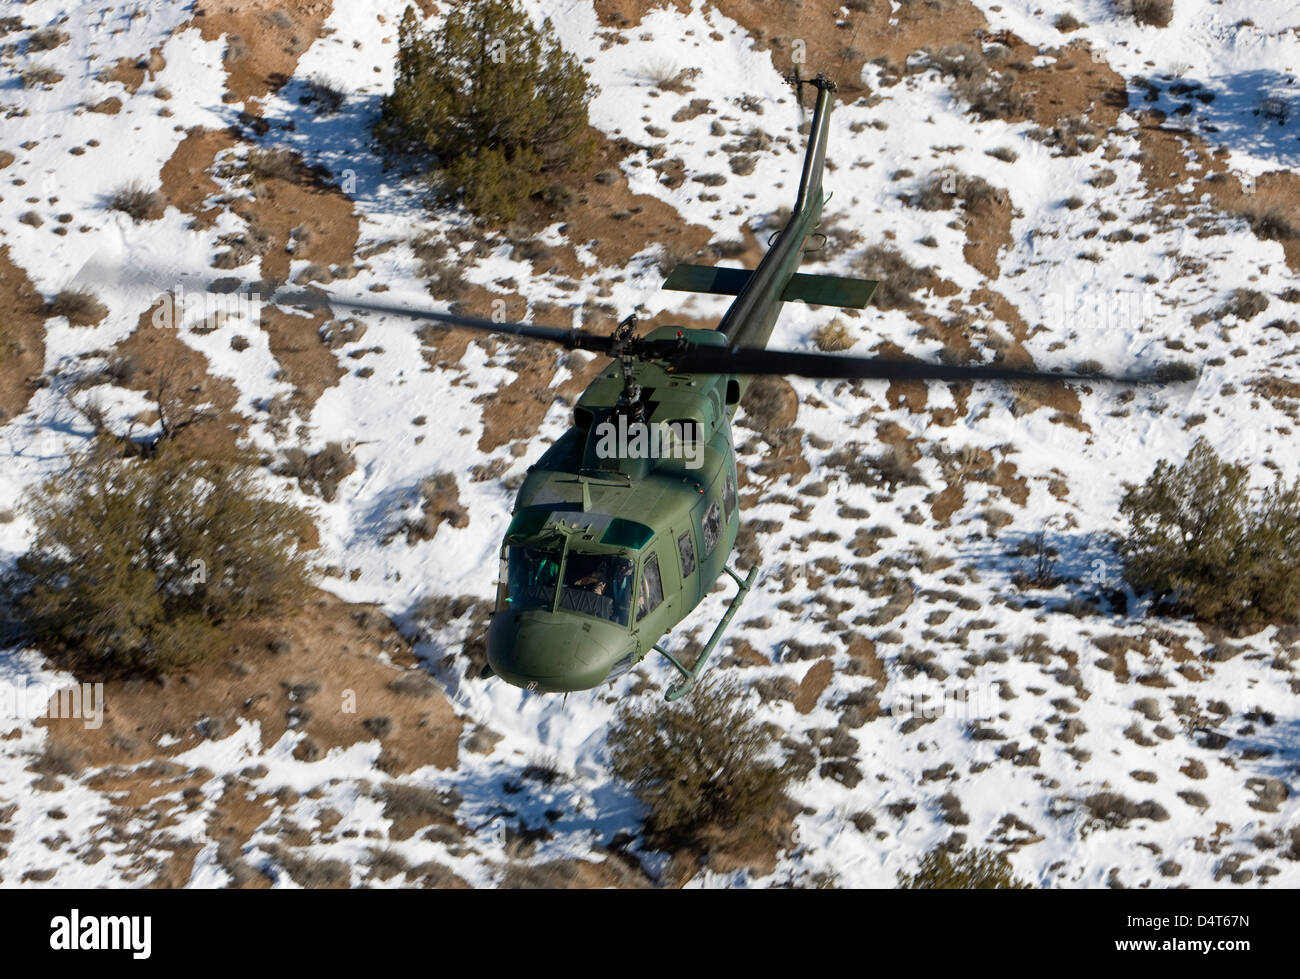 A UH-1N Twin Huey from the 512th RQS flies a training mission near Kirtland Air Force Base, New Mexico. - Stock Image